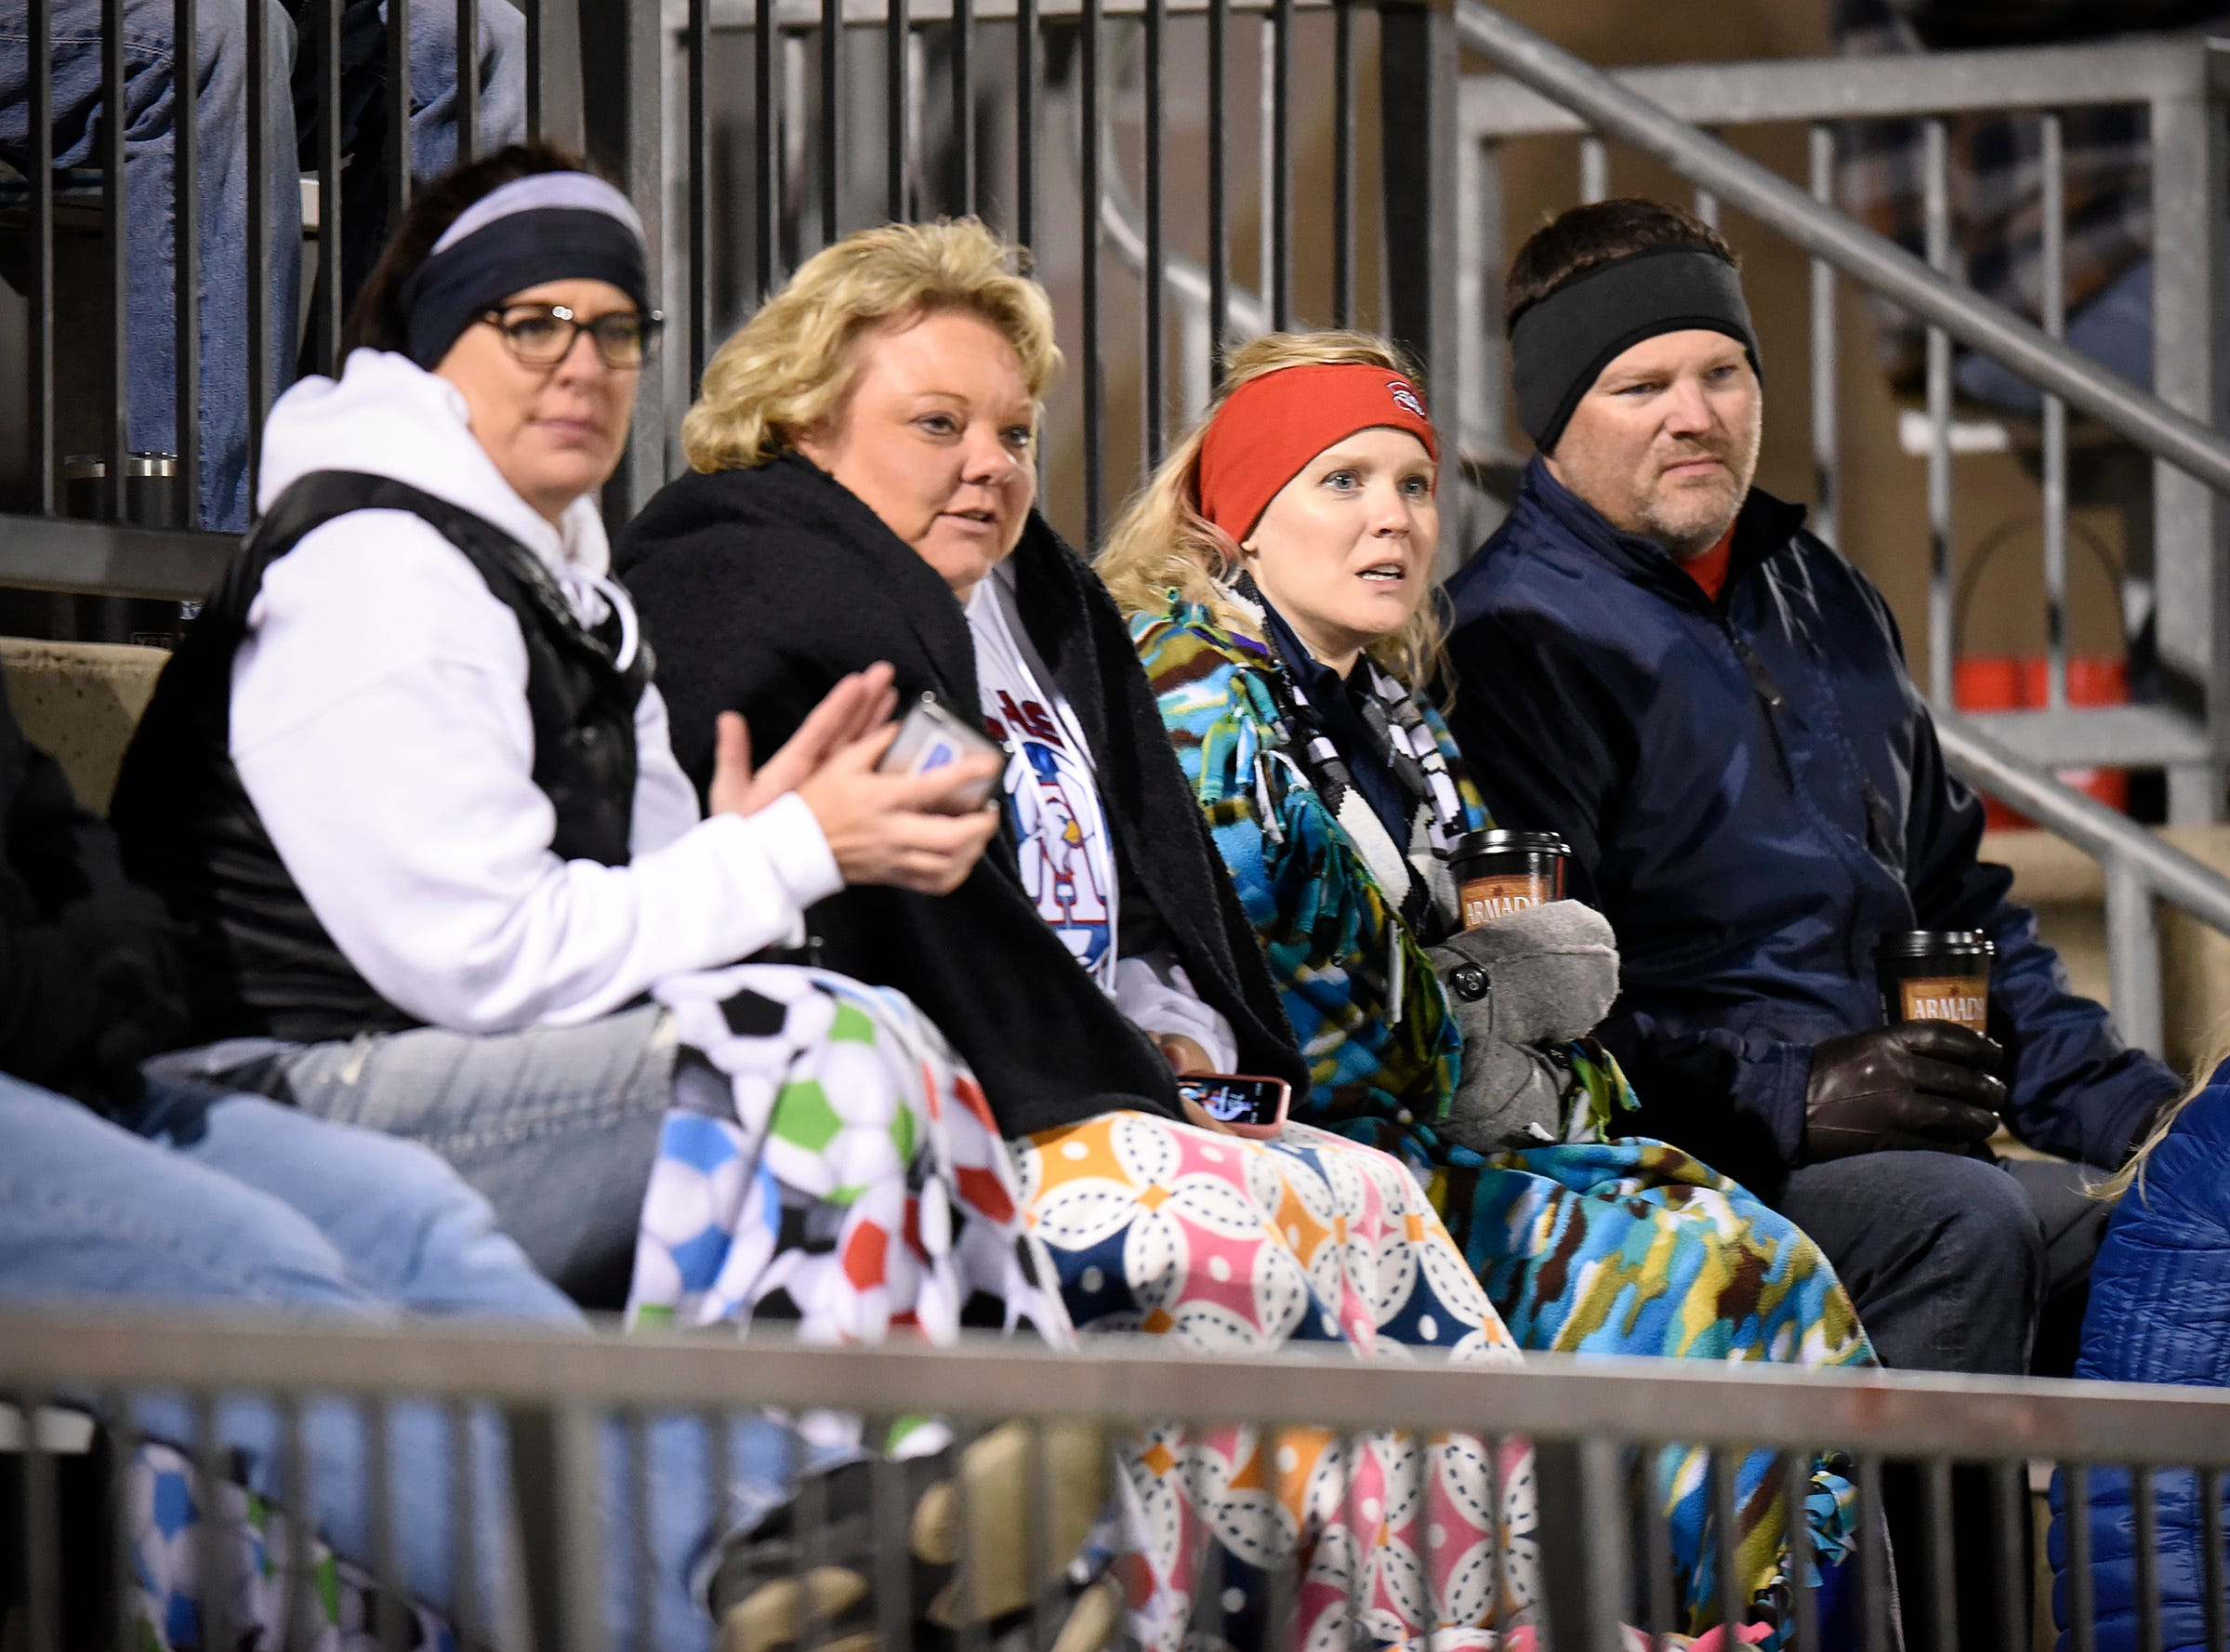 Soccer fans try and stay warm during the Tech and Apollo match Thursday, Sept. 27, at Husky Stadium.